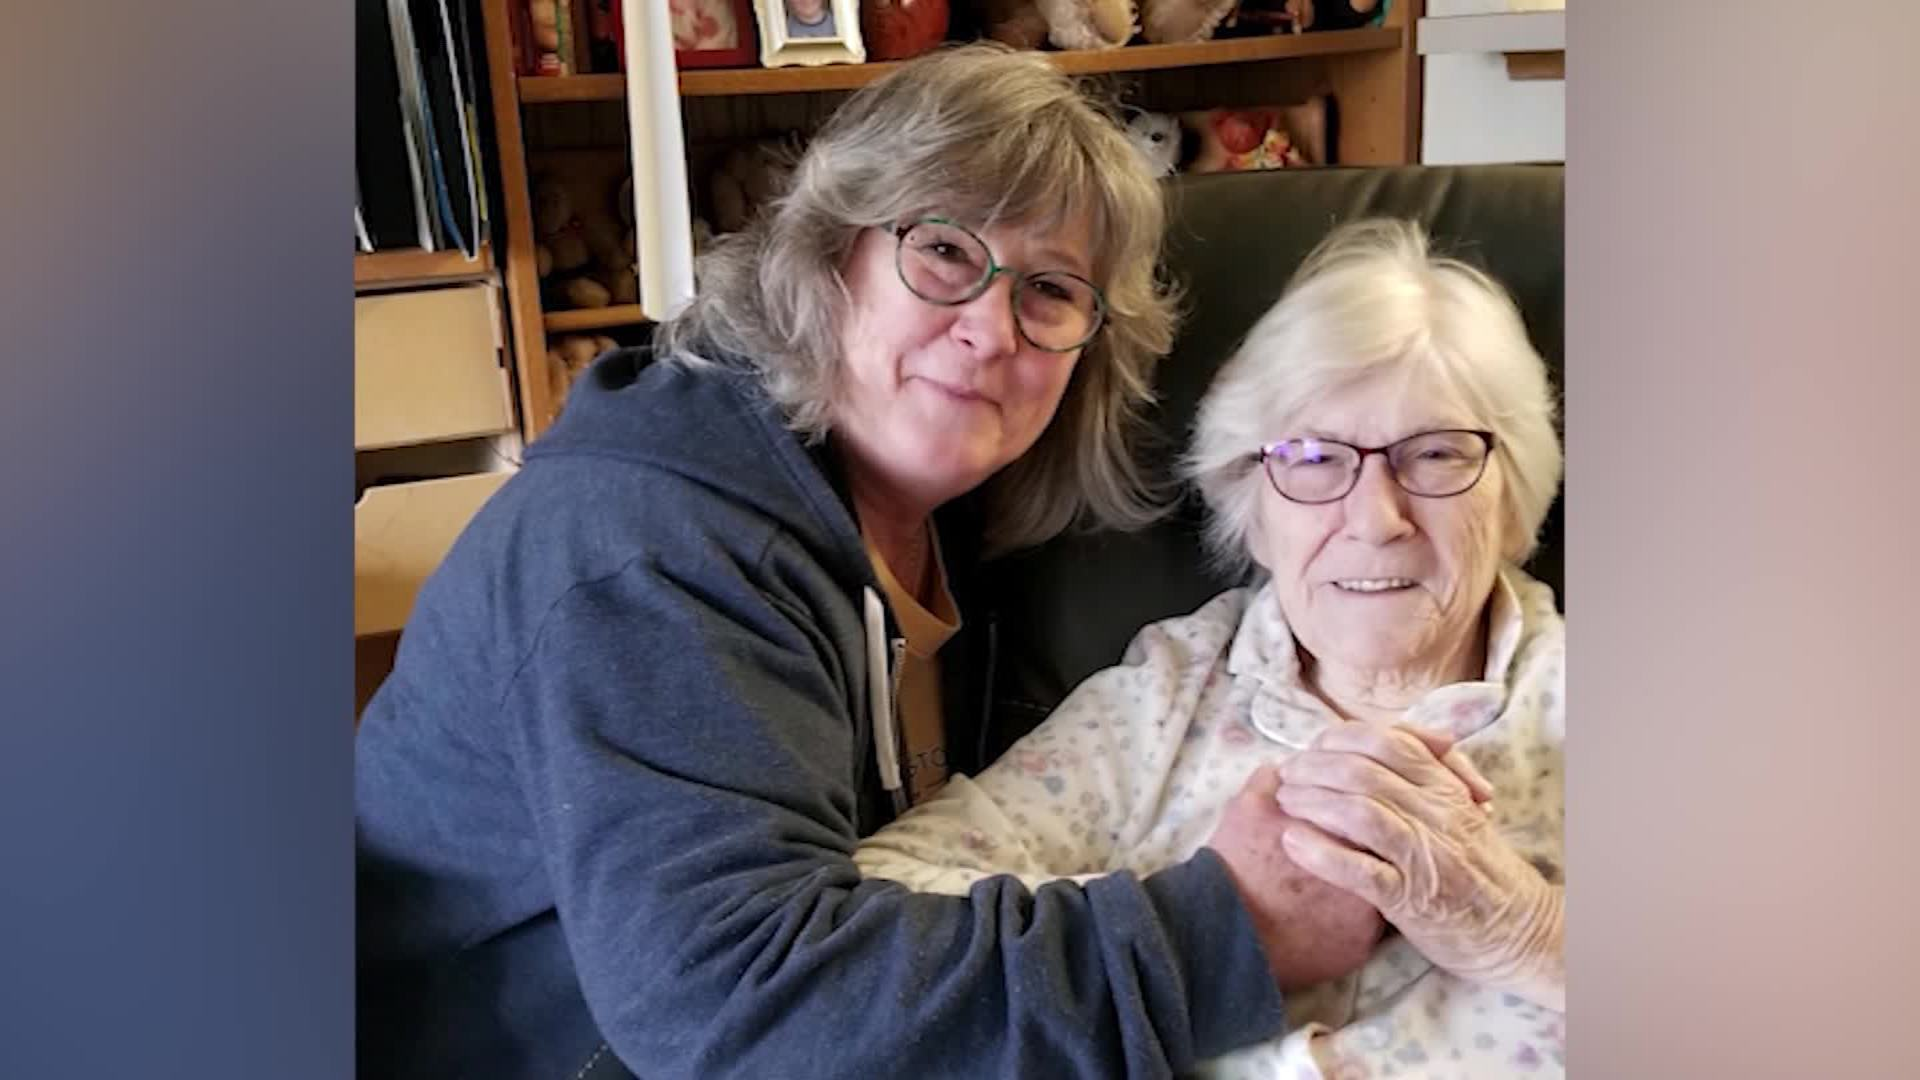 At 90, she said her final goodbyes as doctors prepared her to die from coronavirus. Then she survived